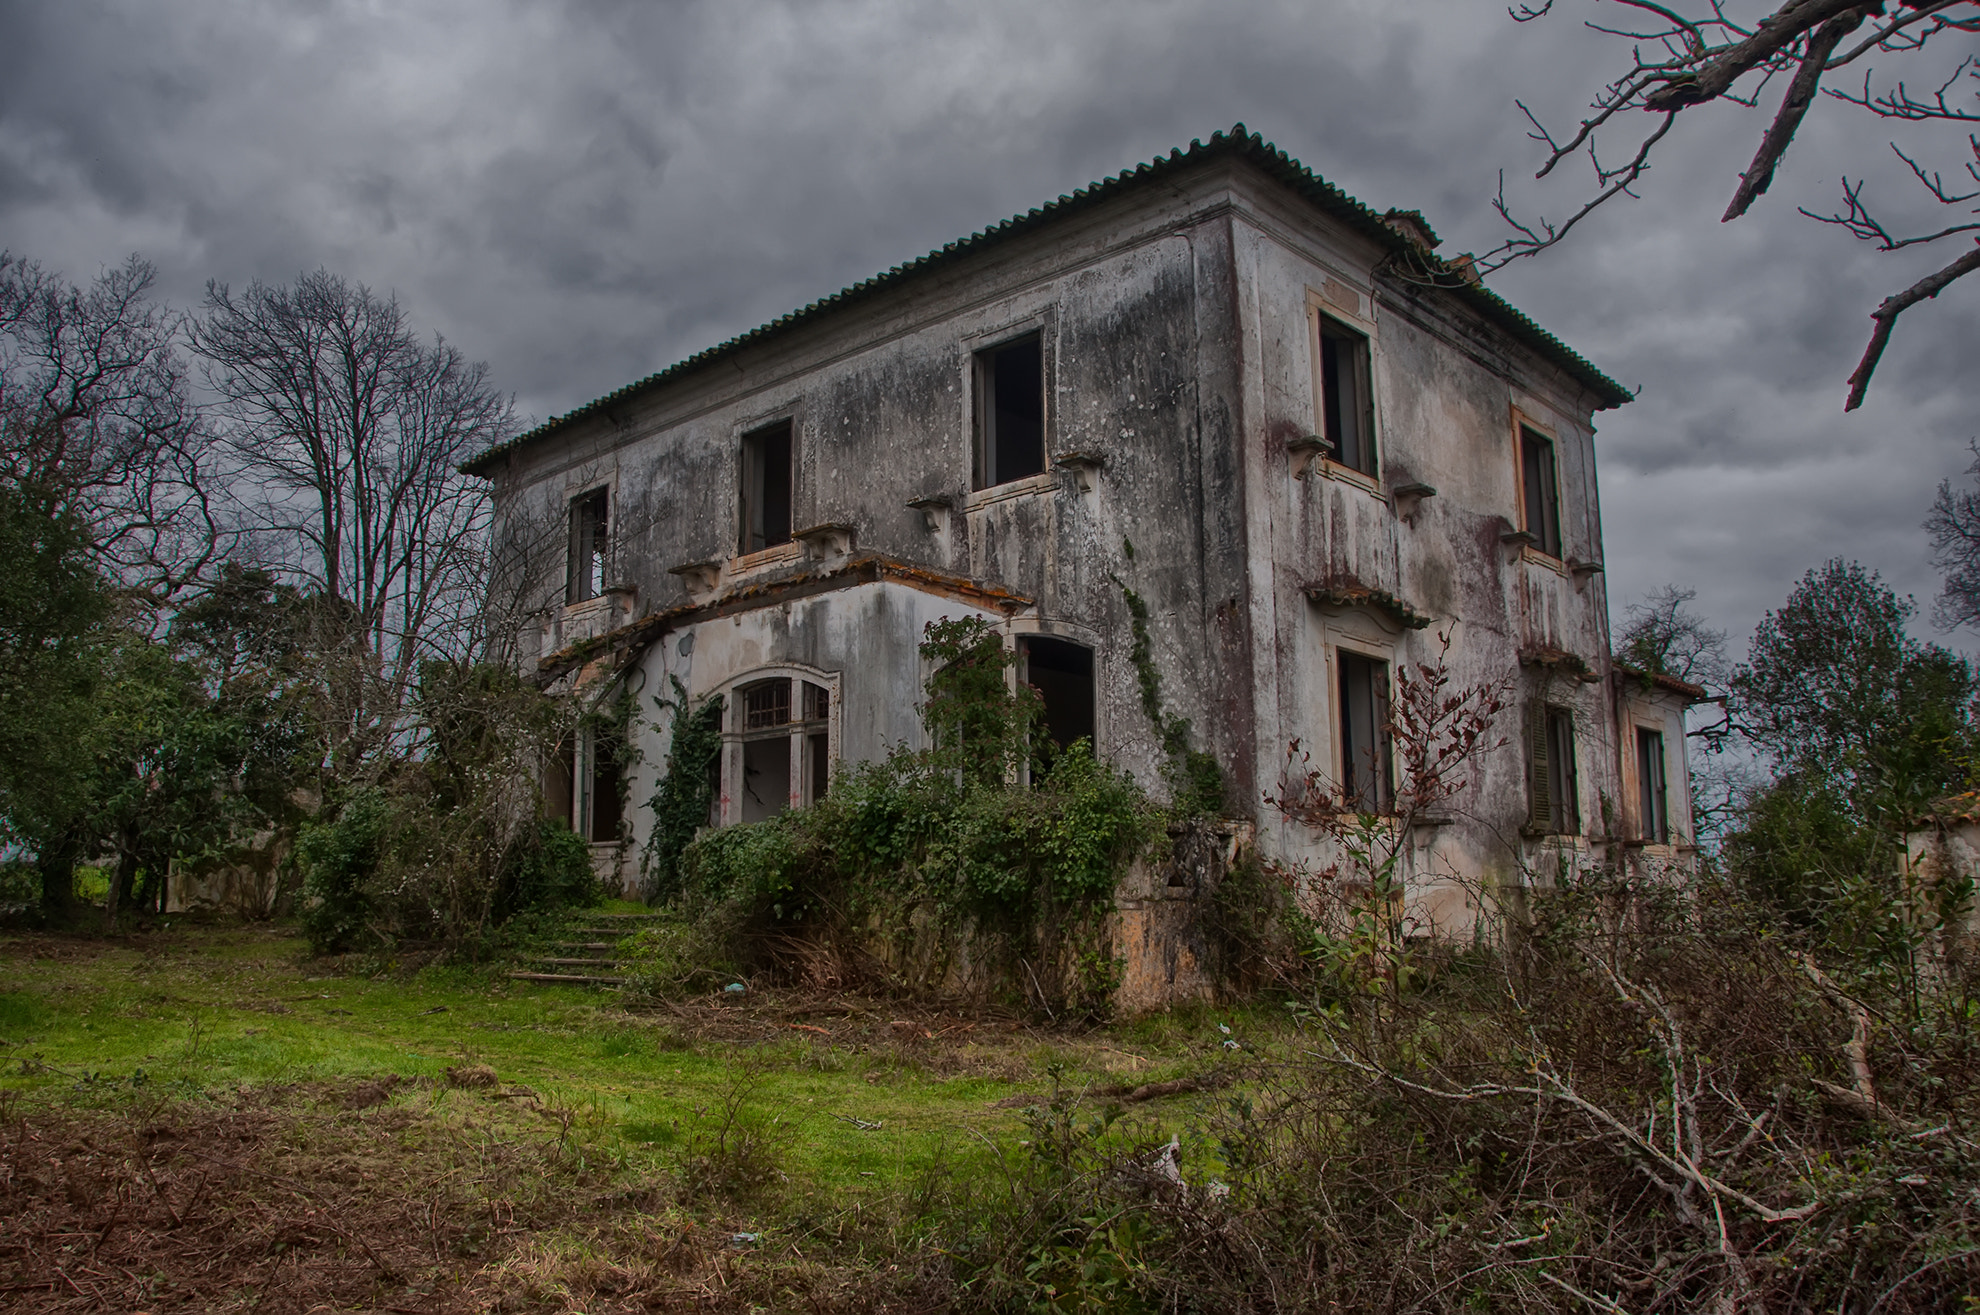 Photograph The abandoned house by Jorge Orfão on 500px